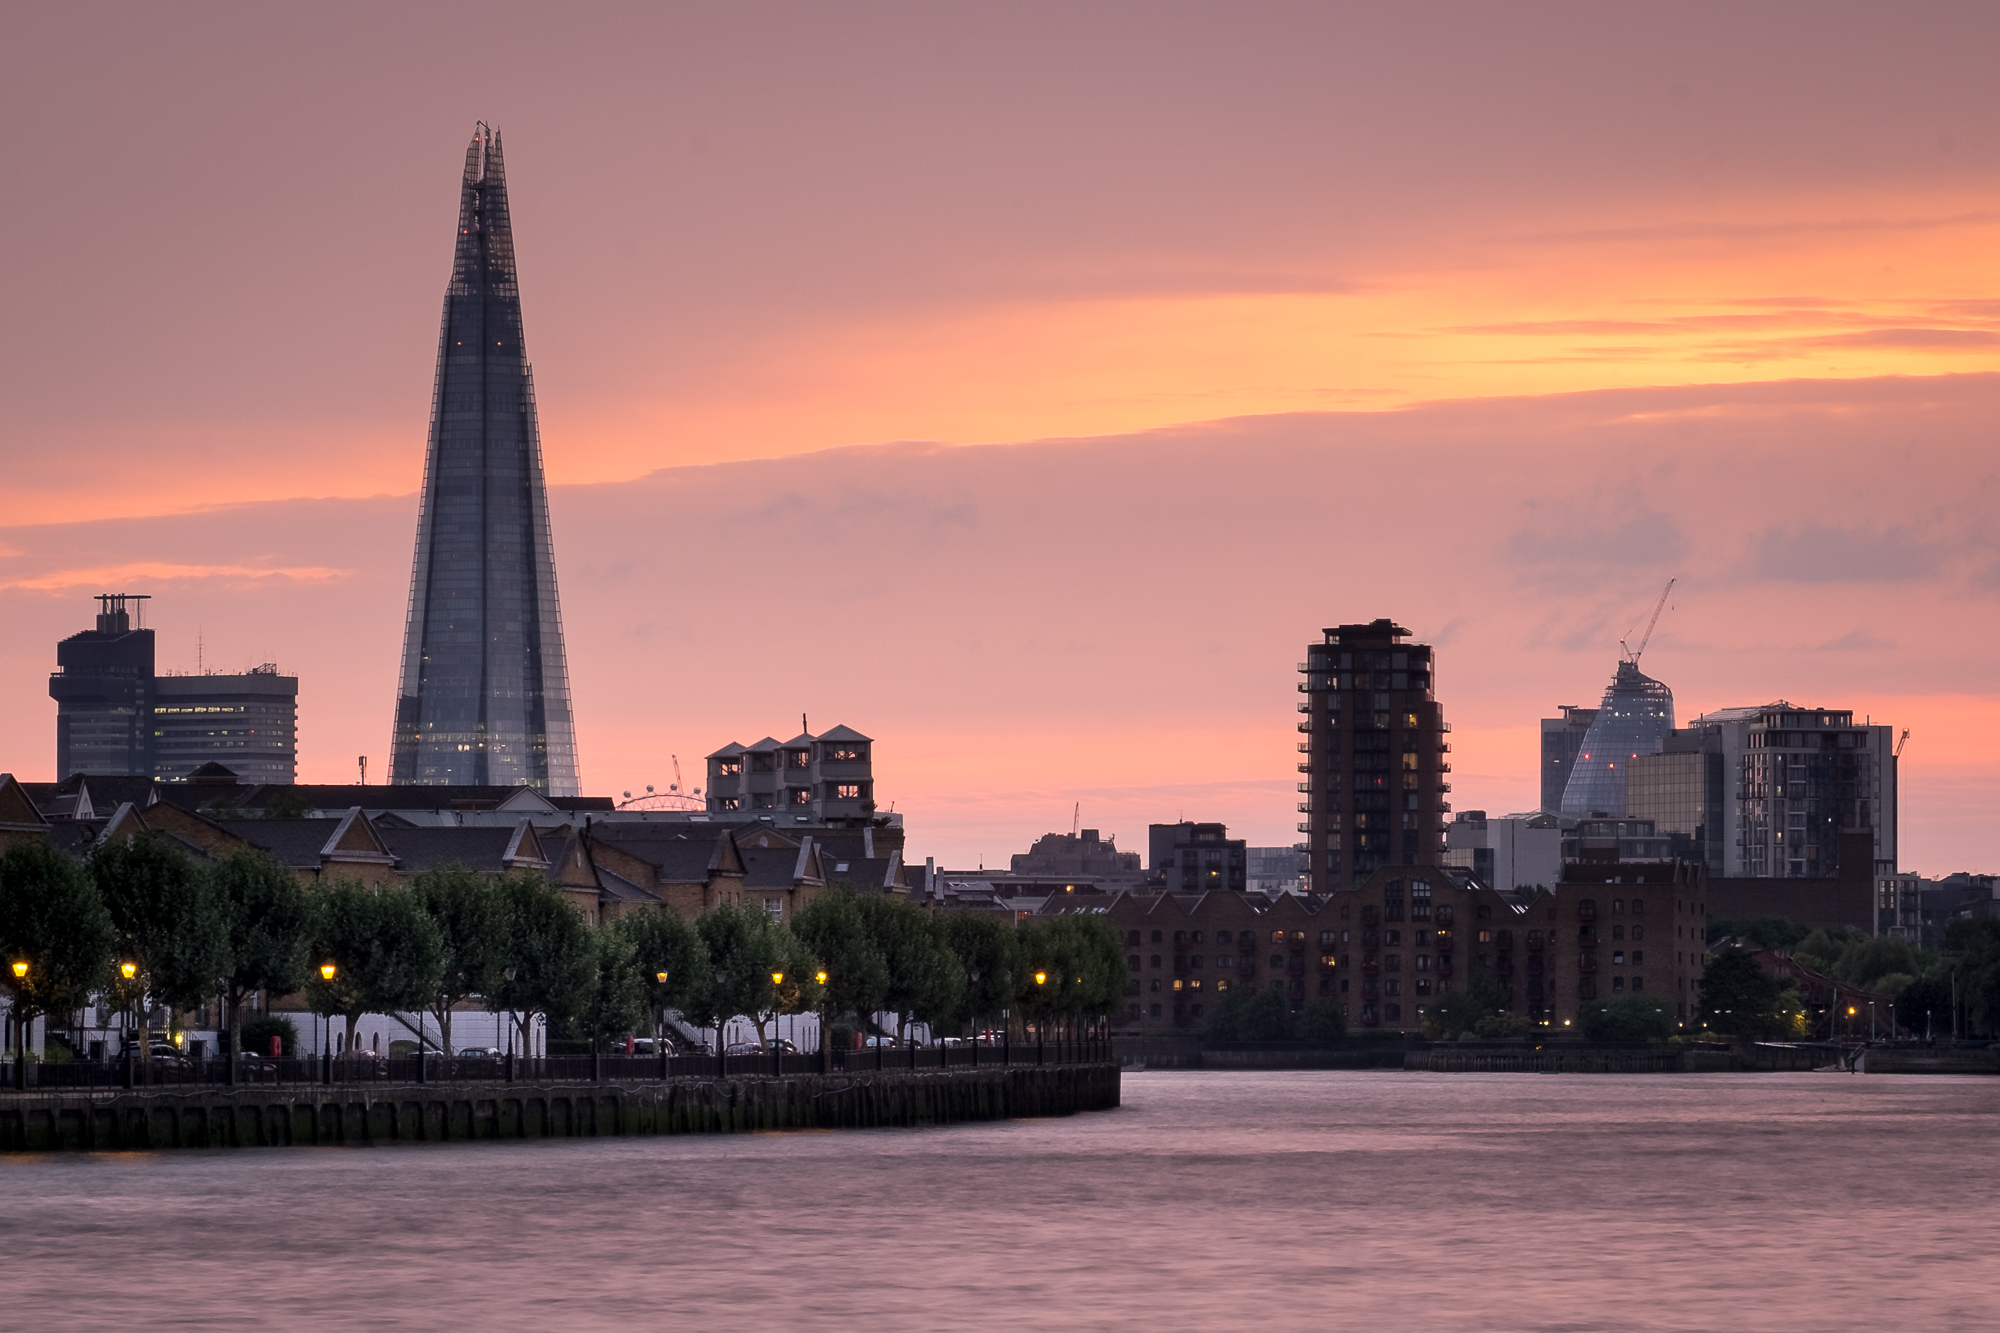 Photo of the Shard at sunset taken by Trevor Sherwin